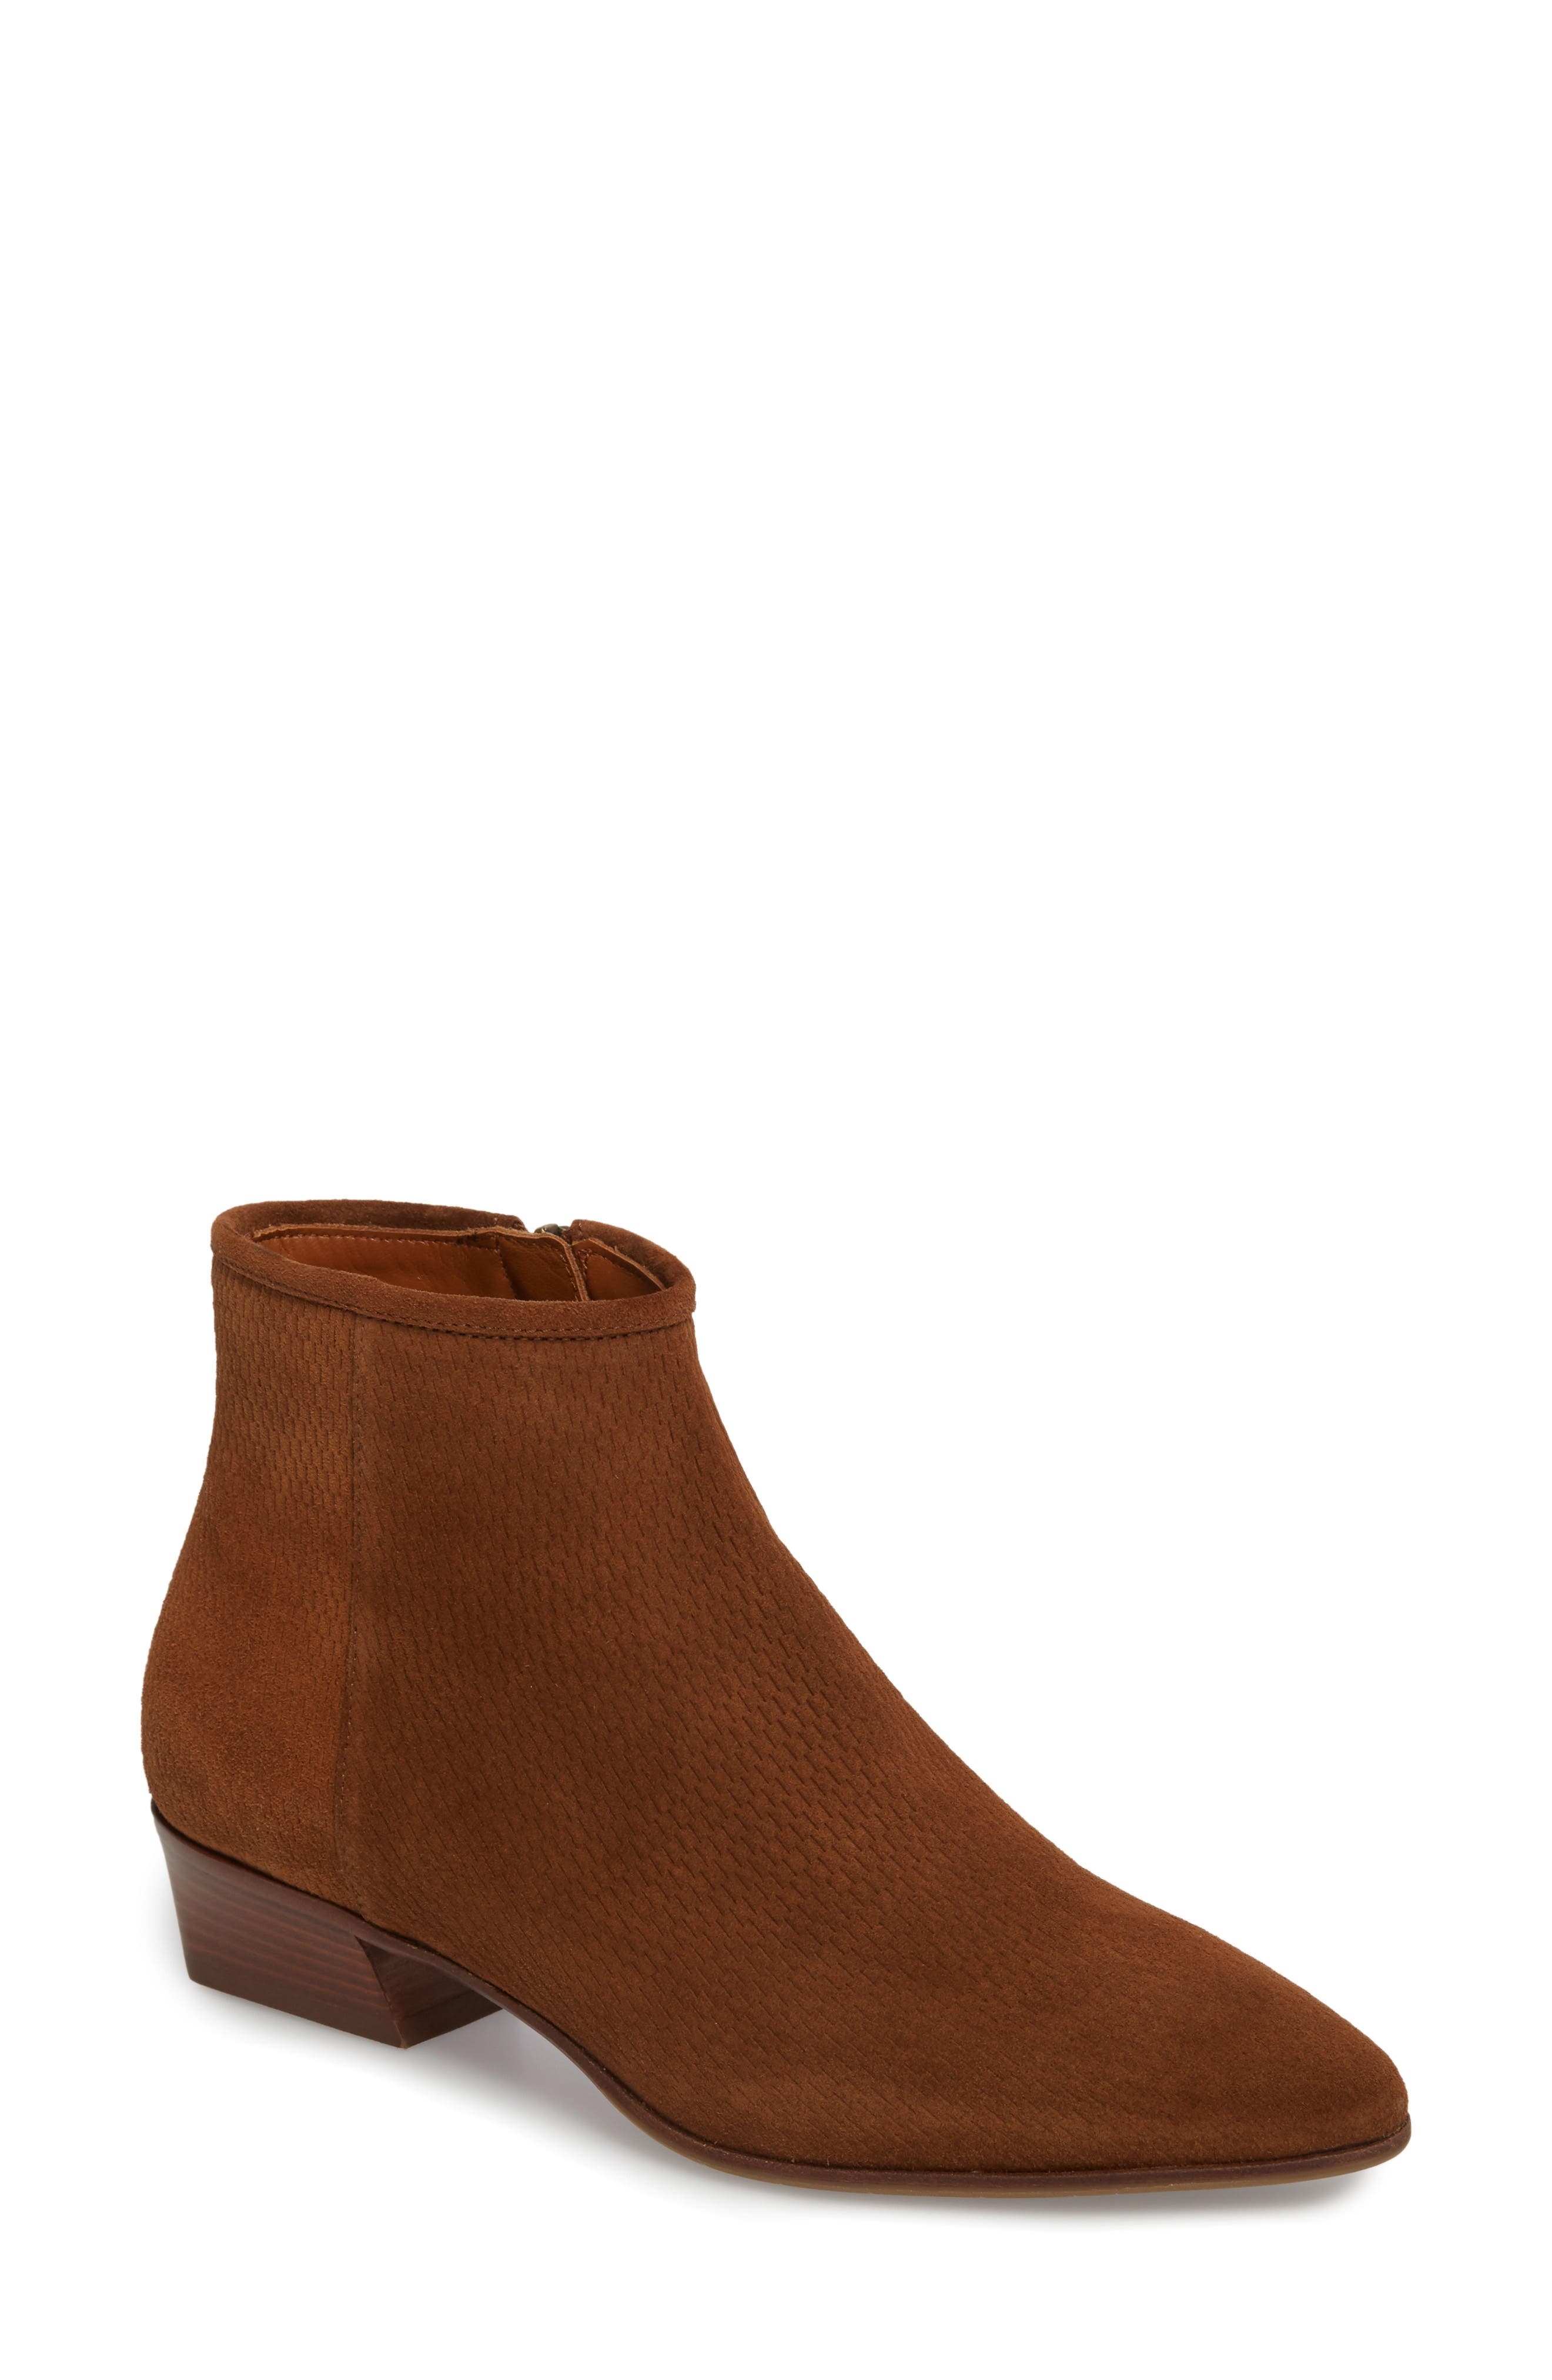 Fire Embossed Bootie,                         Main,                         color, Chestnut